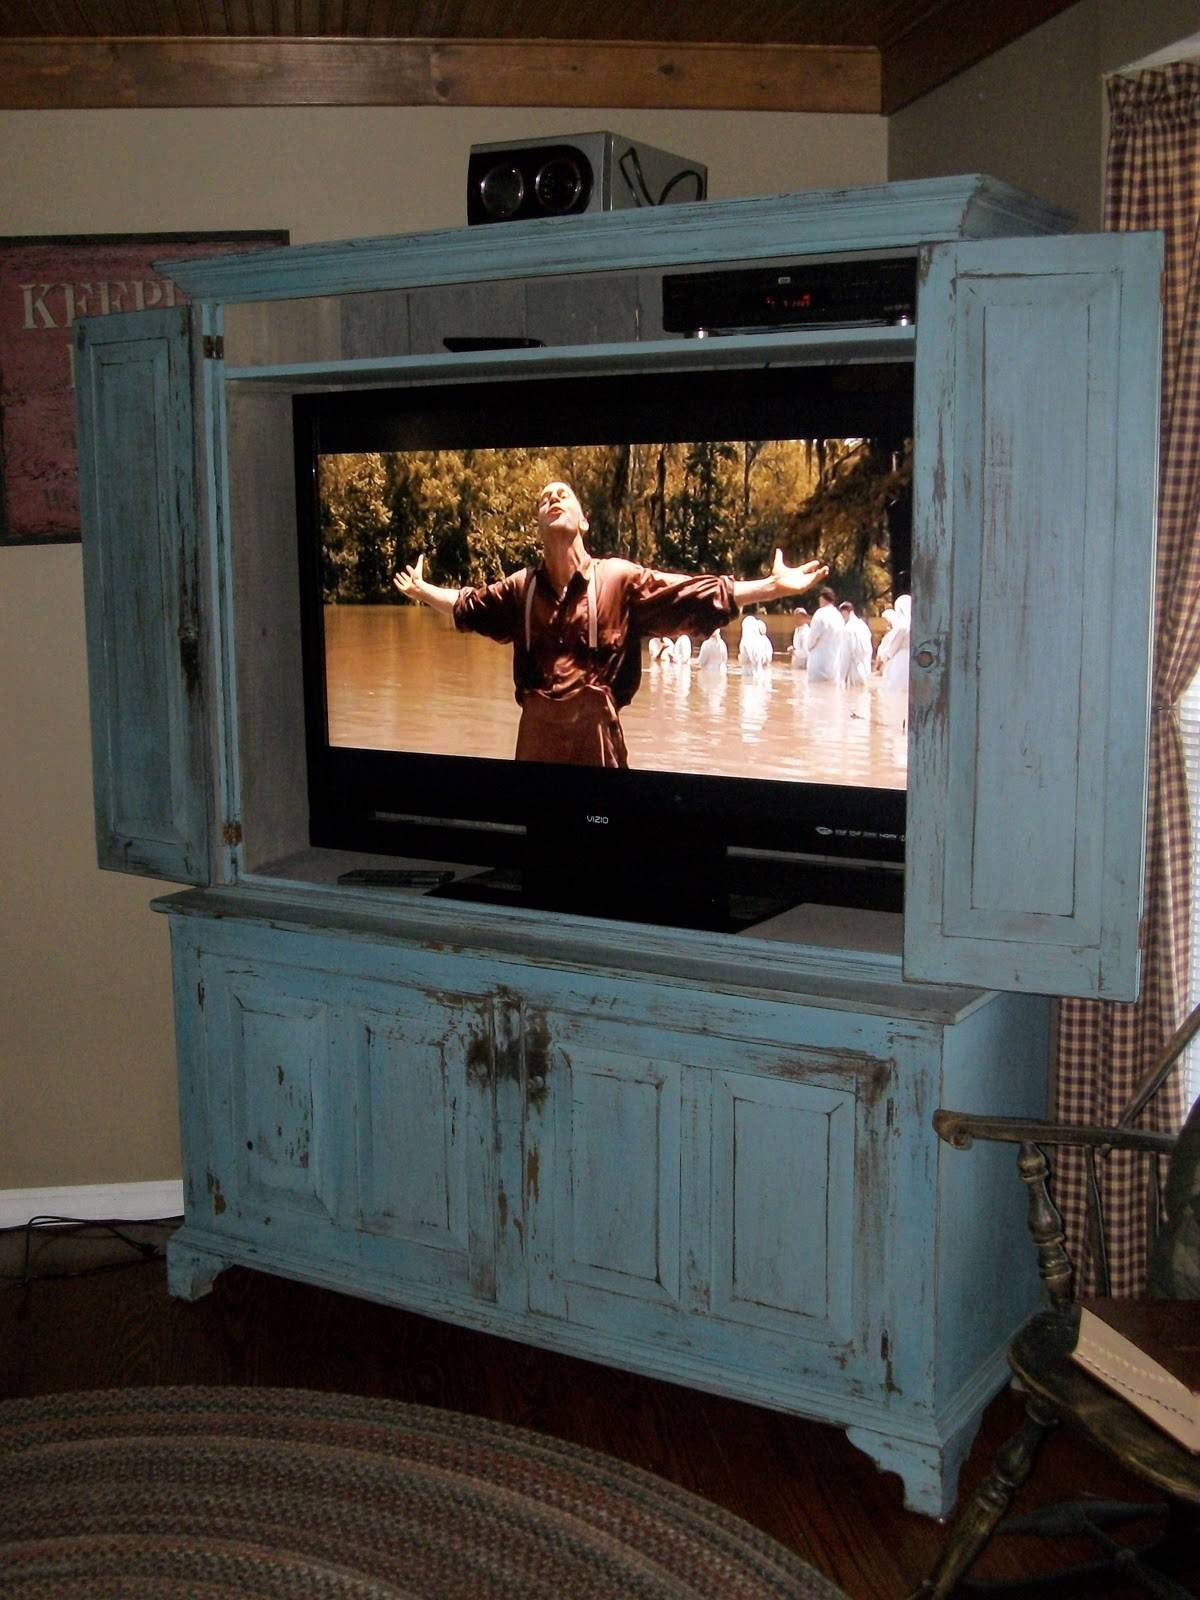 Beau View Gallery Of Enclosed Tv Cabinets For Flat Screens With Doors